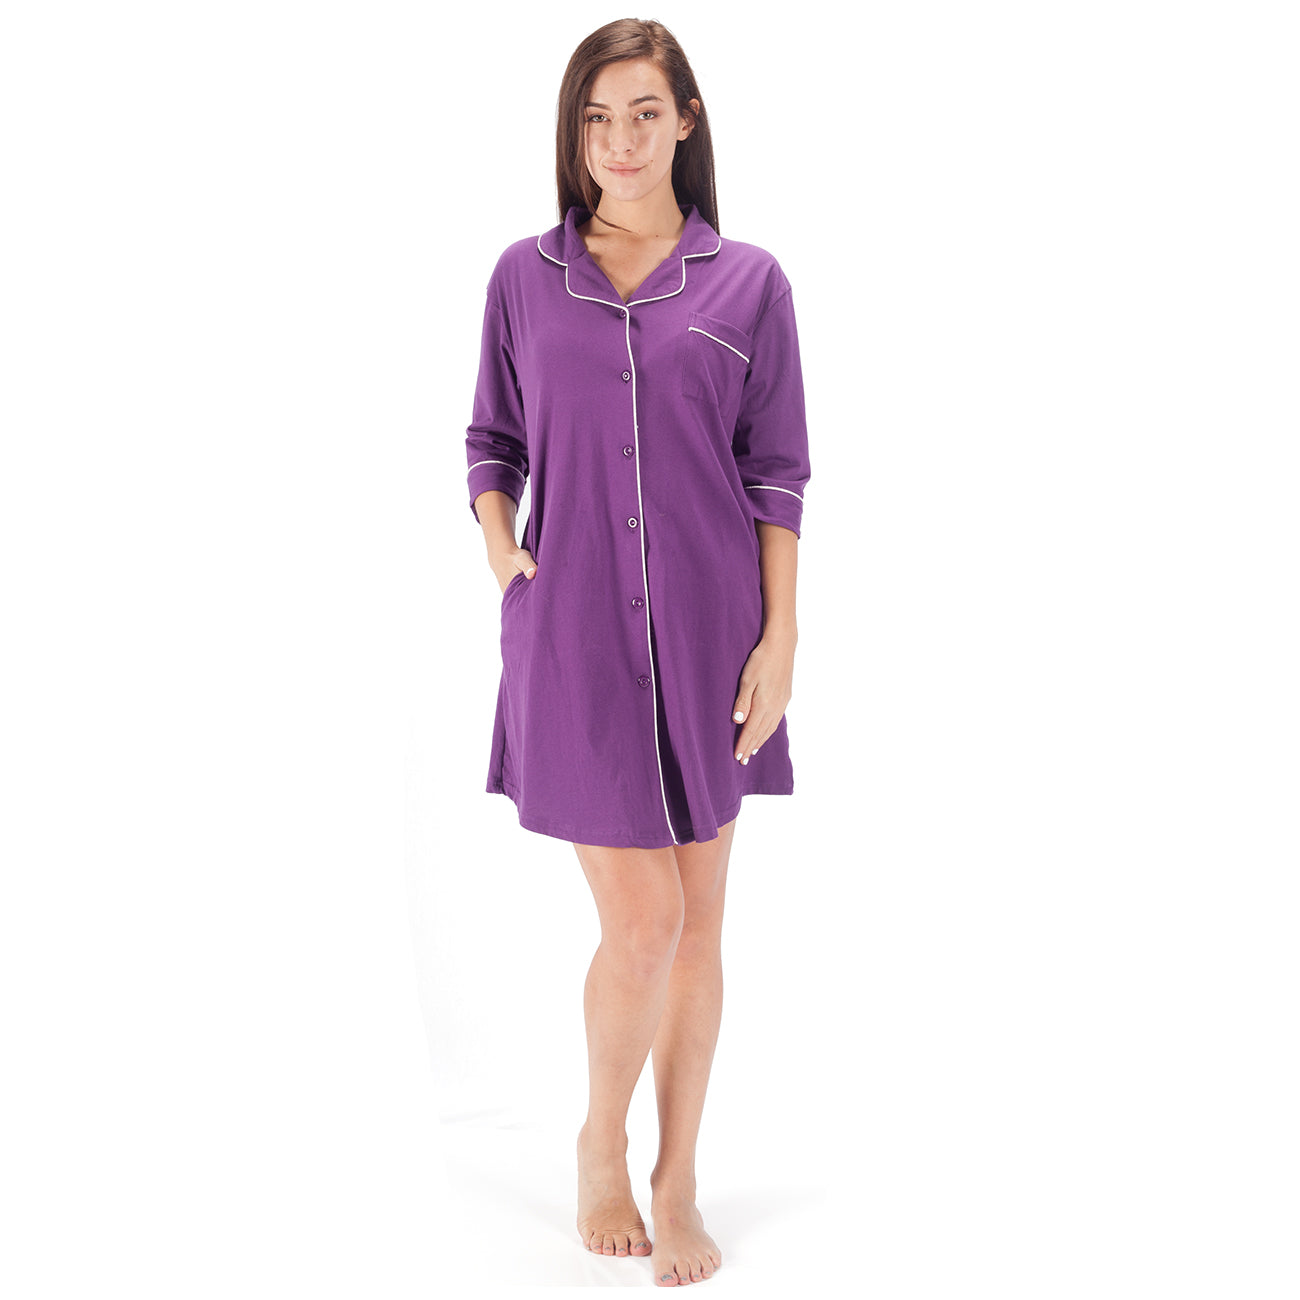 WEWINK CUKOO Womens Sleepwear Boyfriend Sleep Dress Shirt 3/4 Long Sleeve Cotton Nightshirt